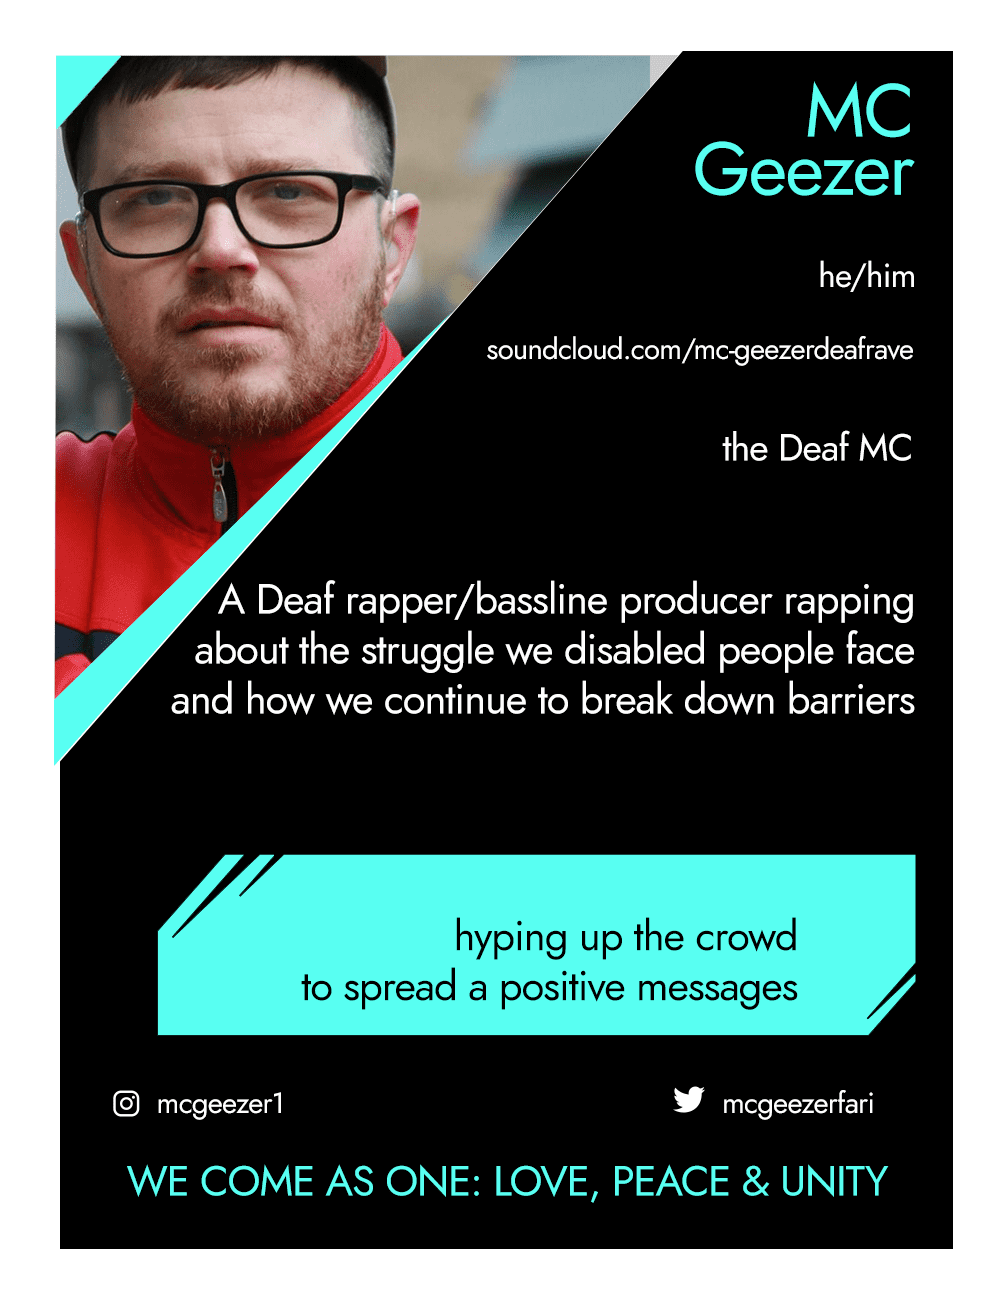 This is the front of an artist announcement card for MC Geezer. The design is styled on an American baseball card. The card has a thin white border and the rest of the card is black with turquoise accents. On the left hand corner, there is a triangular cross section of a photo of MC Geezer. MC Geezer is a white man with short hair and a short beard. He is wearing black glasses and a red polo shirt, and is standing outside some buildings in Hackney. To the right of the photo, there is the artist's name, MC Geezer, pronouns, he/him, website, soundcloud.com/mc-geezerdeafrave, and artistic practice, the Deaf MC. Below this is a short artist biography, which reads A Deaf rapper/bassline producer rapping about the struggle we disabled people face and how we continue to break down barriers. In a turquoise rectangle below this, the card highlights what the artist's role is within CRIPtic. For MC Geezer this reads hyping up the crowd to spread a positive message. Below this are the artist's social media handles @mcgeezer1 @mcgeezerfari, and a quote selected by the artist. This reads: We come as one: love, peace and unity.